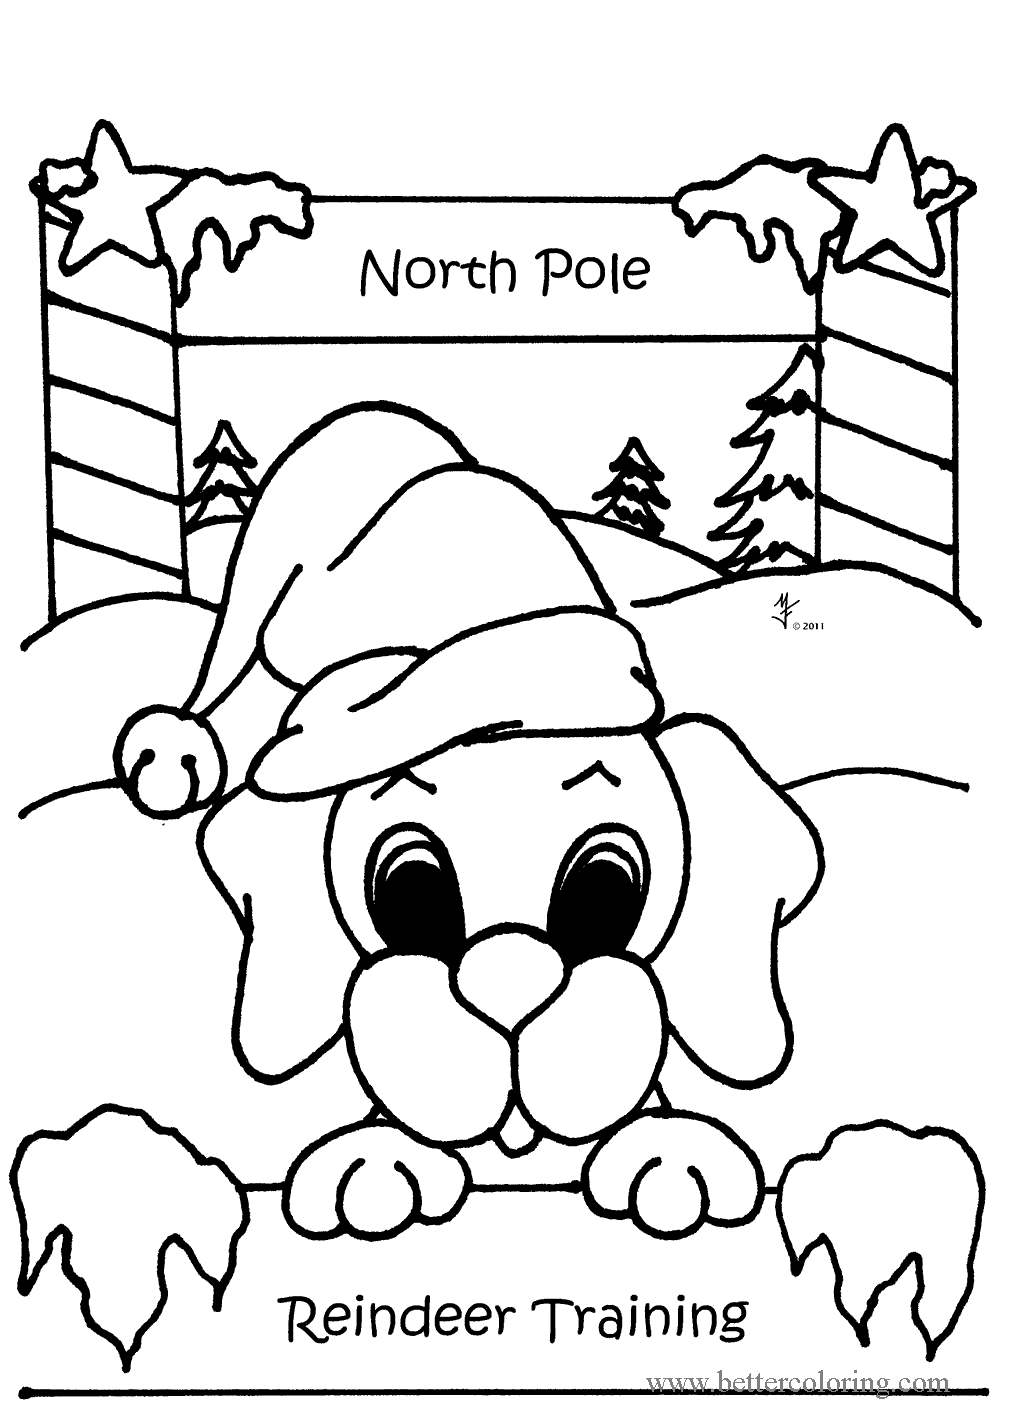 North Pole Christmas Dog Coloring Pages - Free Printable ...